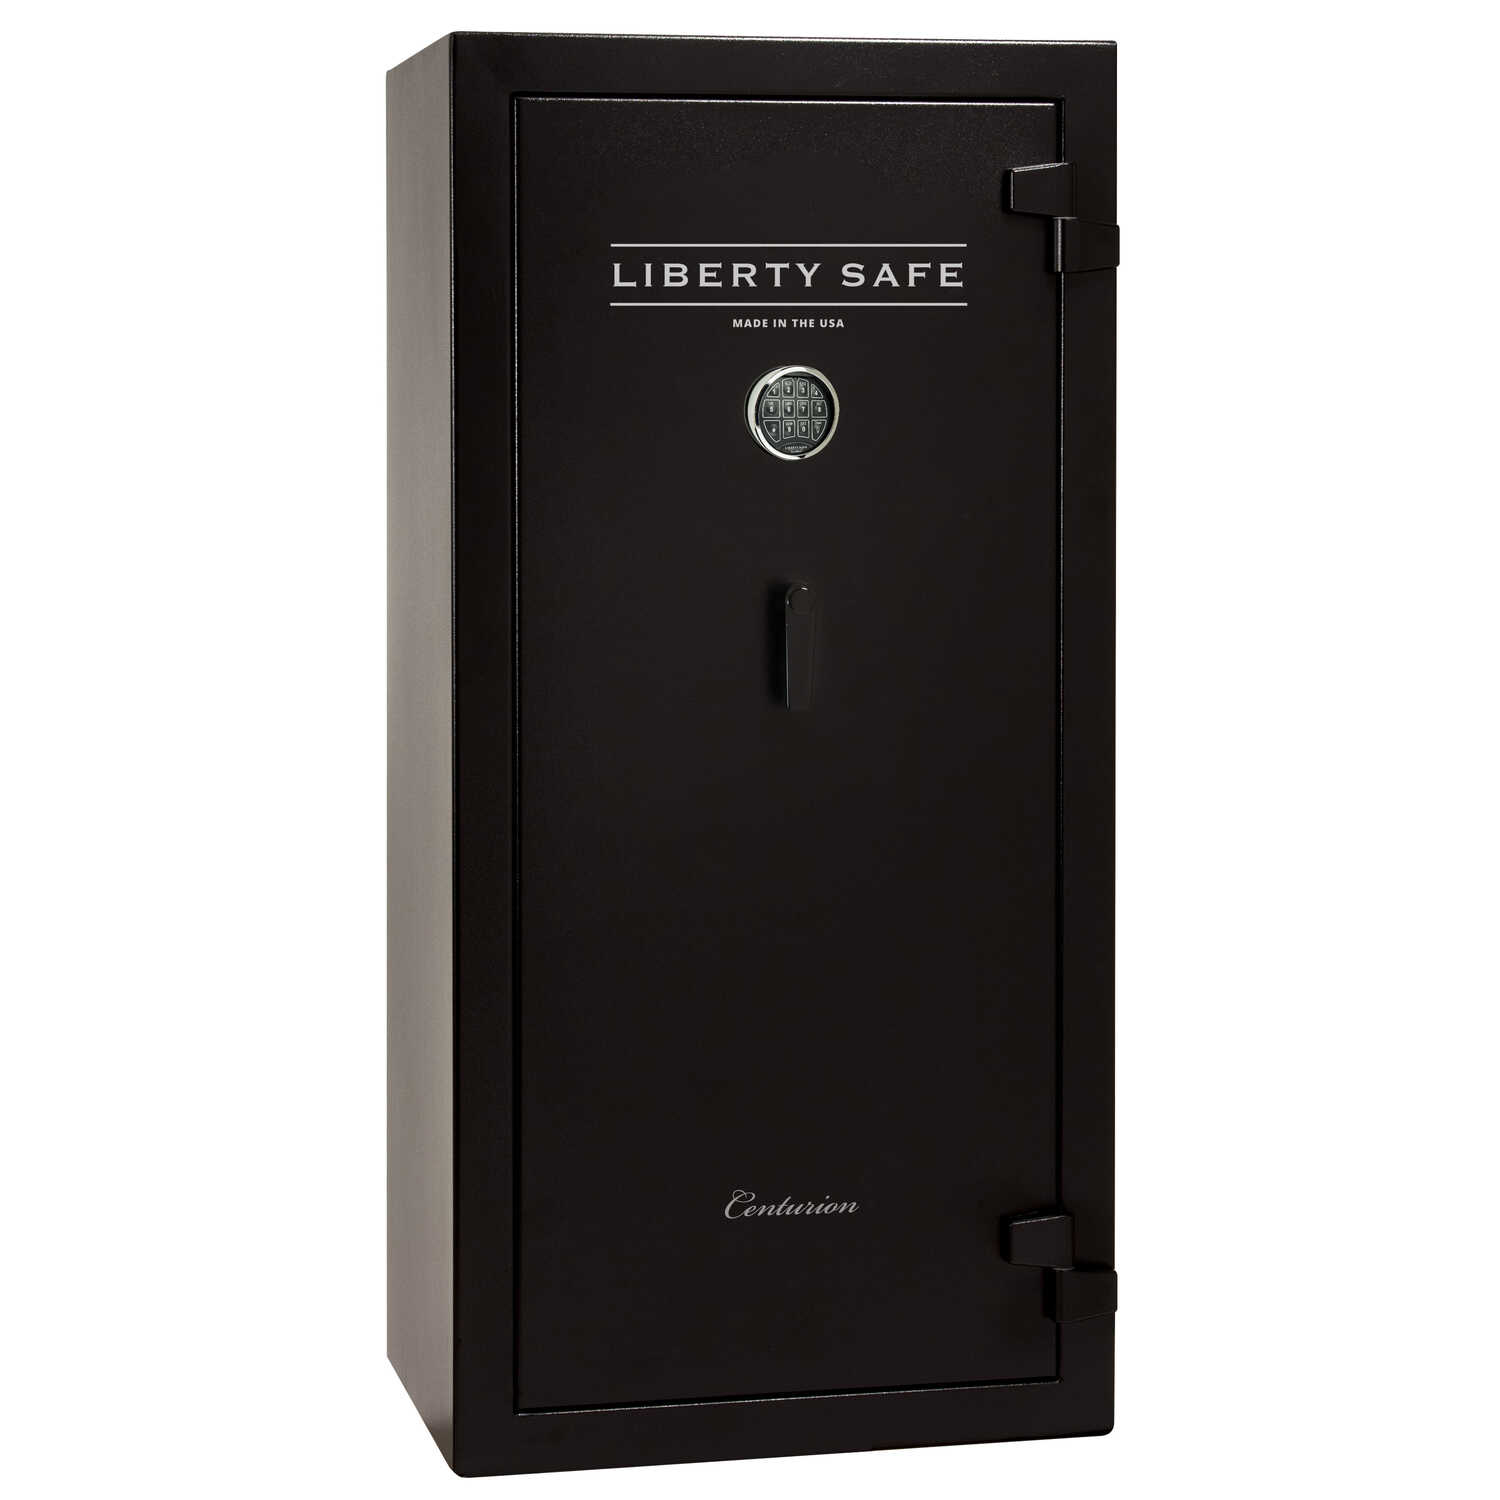 Liberty Safe  Centurion  13.8 cu. ft. 24 Gun Capacity Electronic Lock  Black  Gun Safe